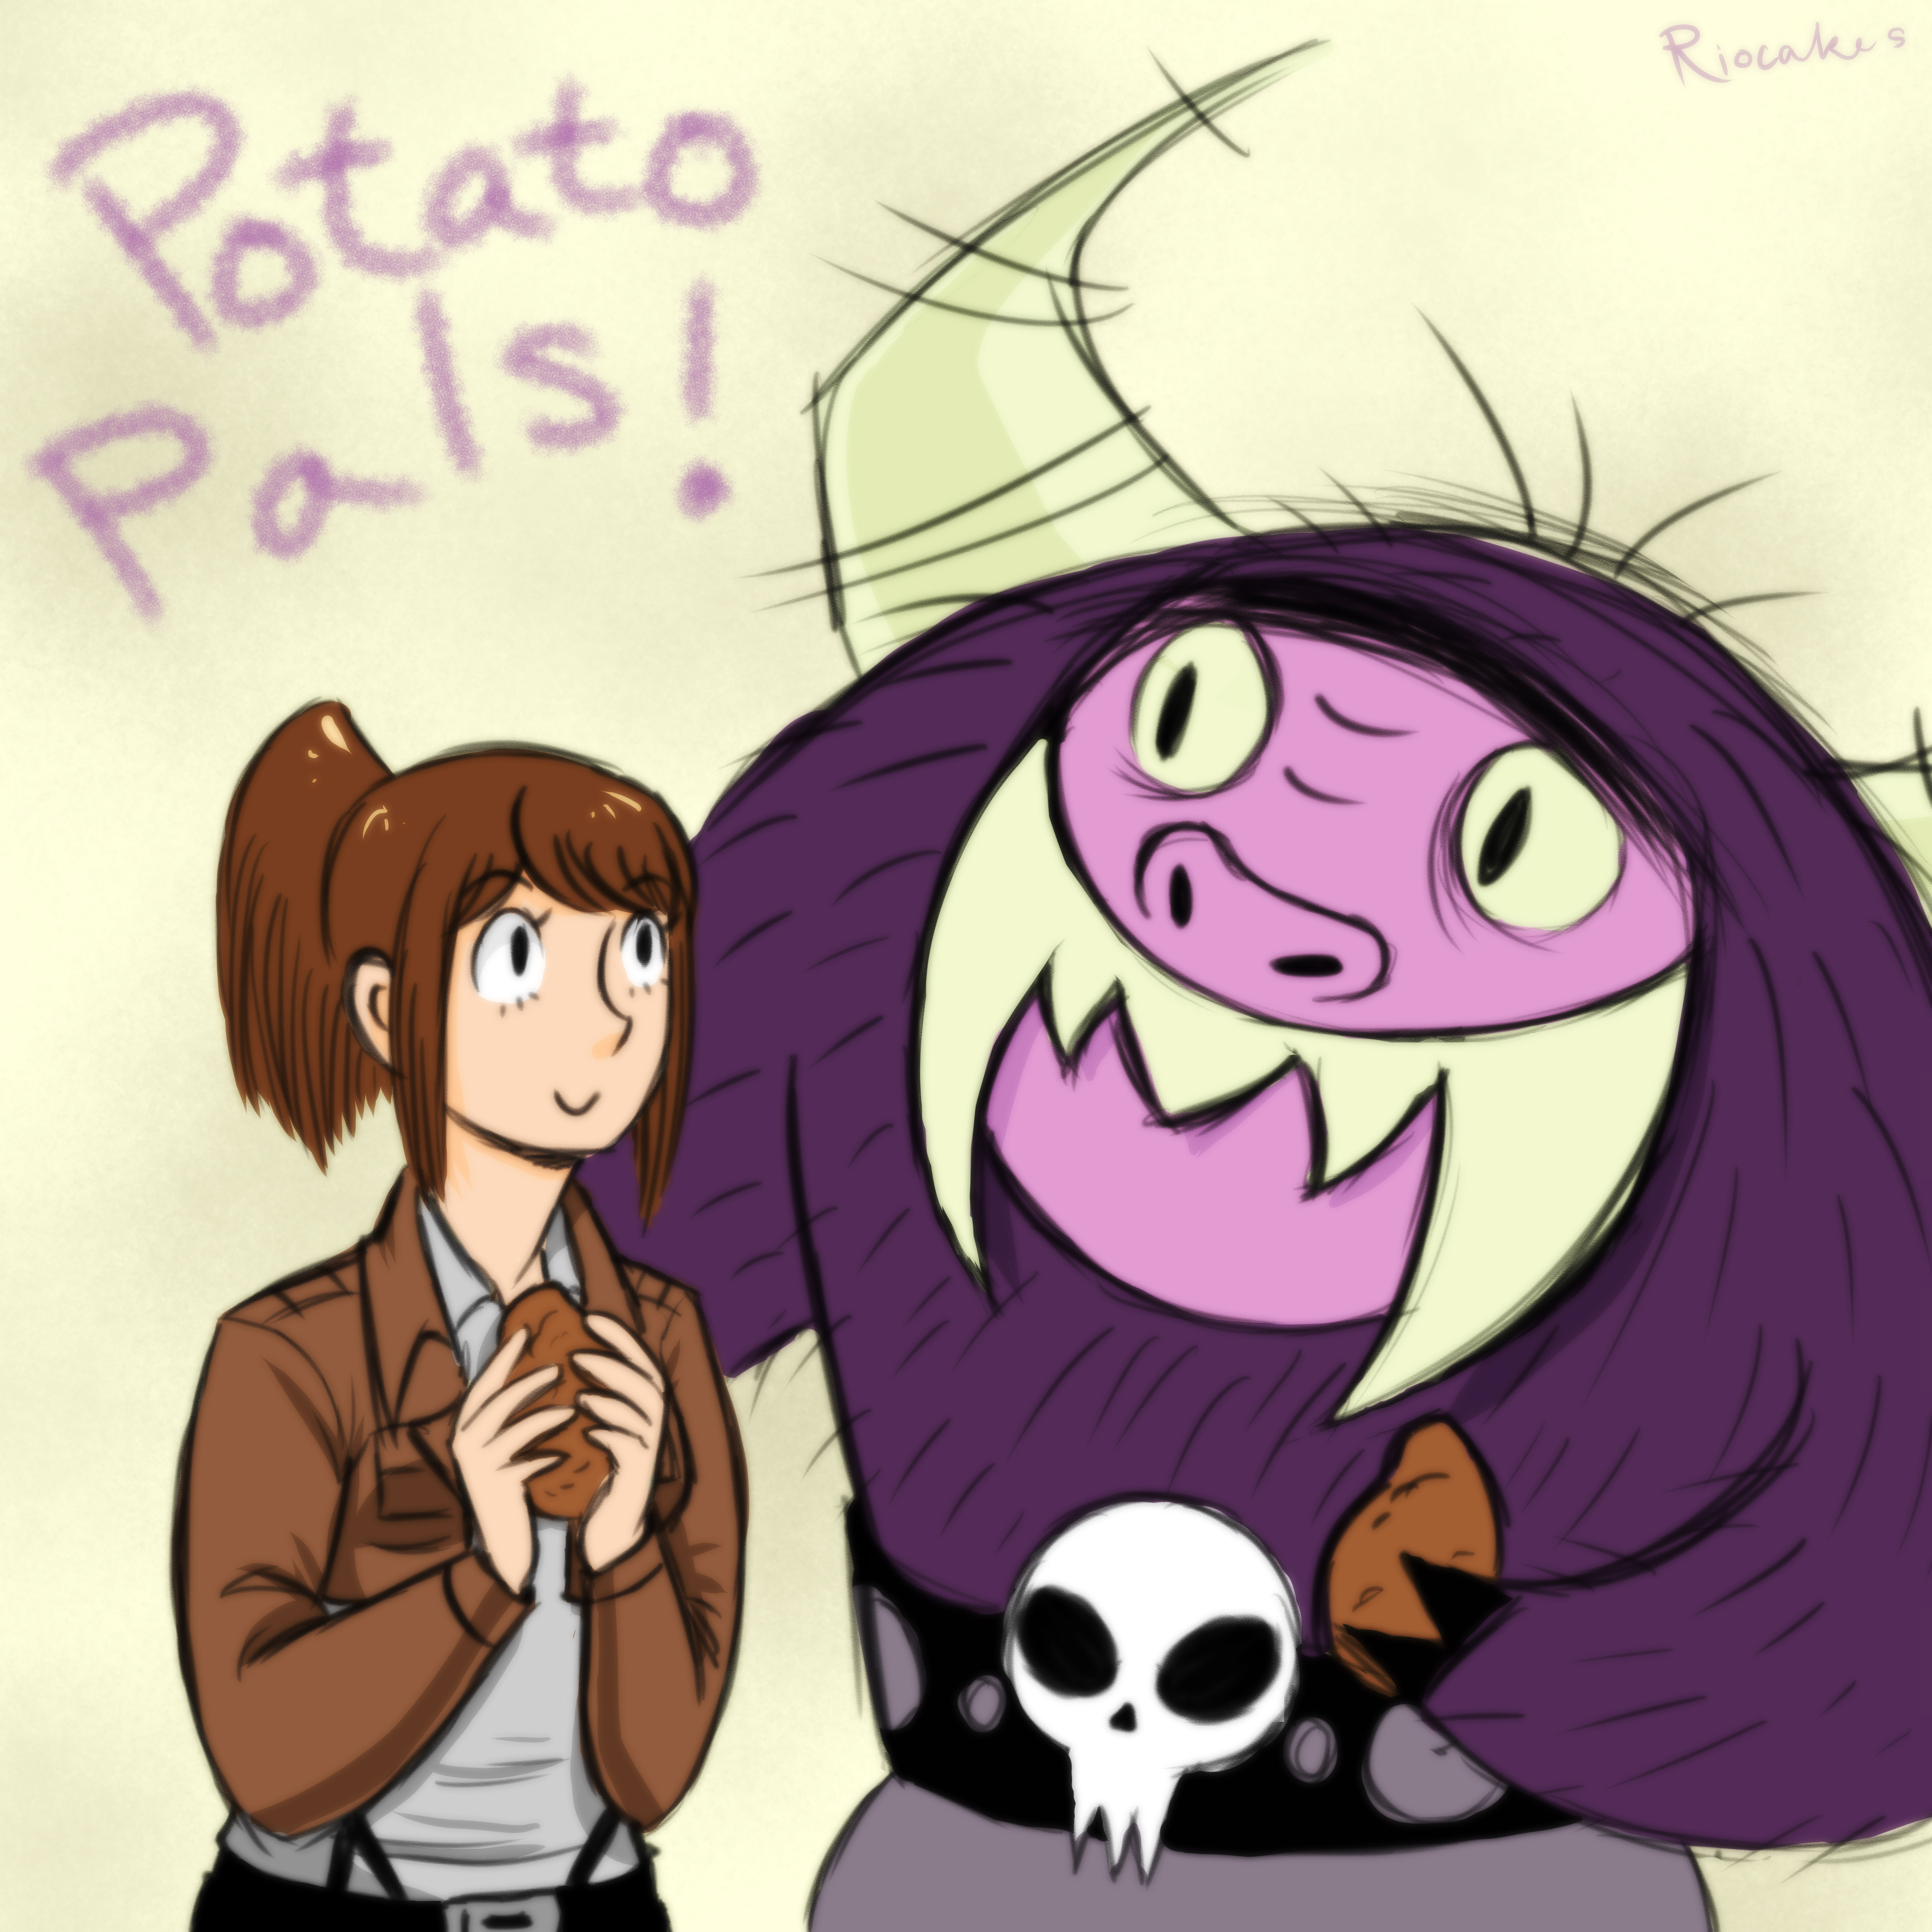 Potato Pals! by Riocakes